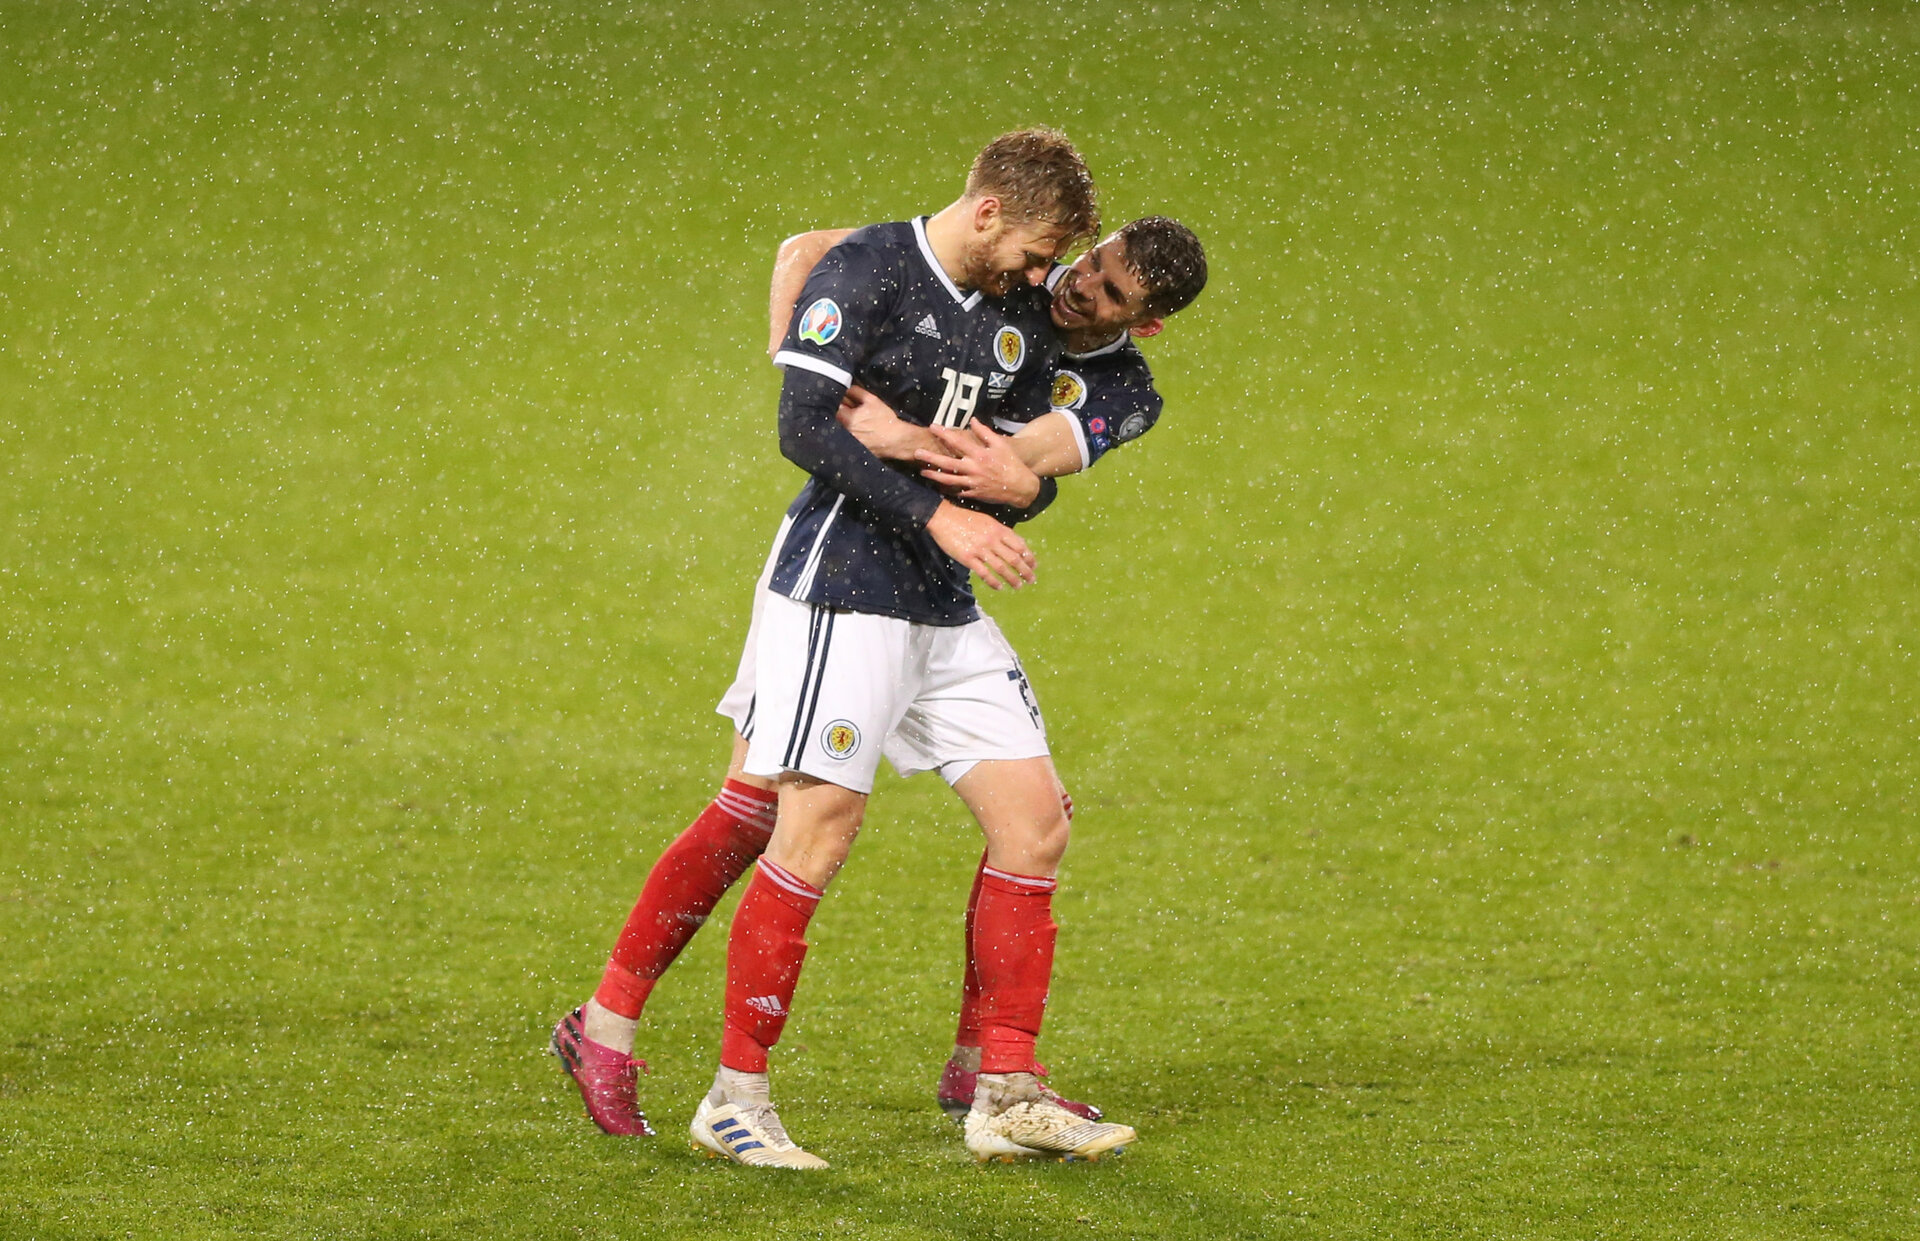 GLASGOW, SCOTLAND - OCTOBER 13:   Stuart Armstrong of Scotland celebrates after scoring their sixth goal during the UEFA Euro 2020 qualifier between Scotland and San Marino at Hampden Park on October 13, 2019 in Glasgow, Scotland. (Photo by Paul Harding - UEFA/UEFA via Getty Images)